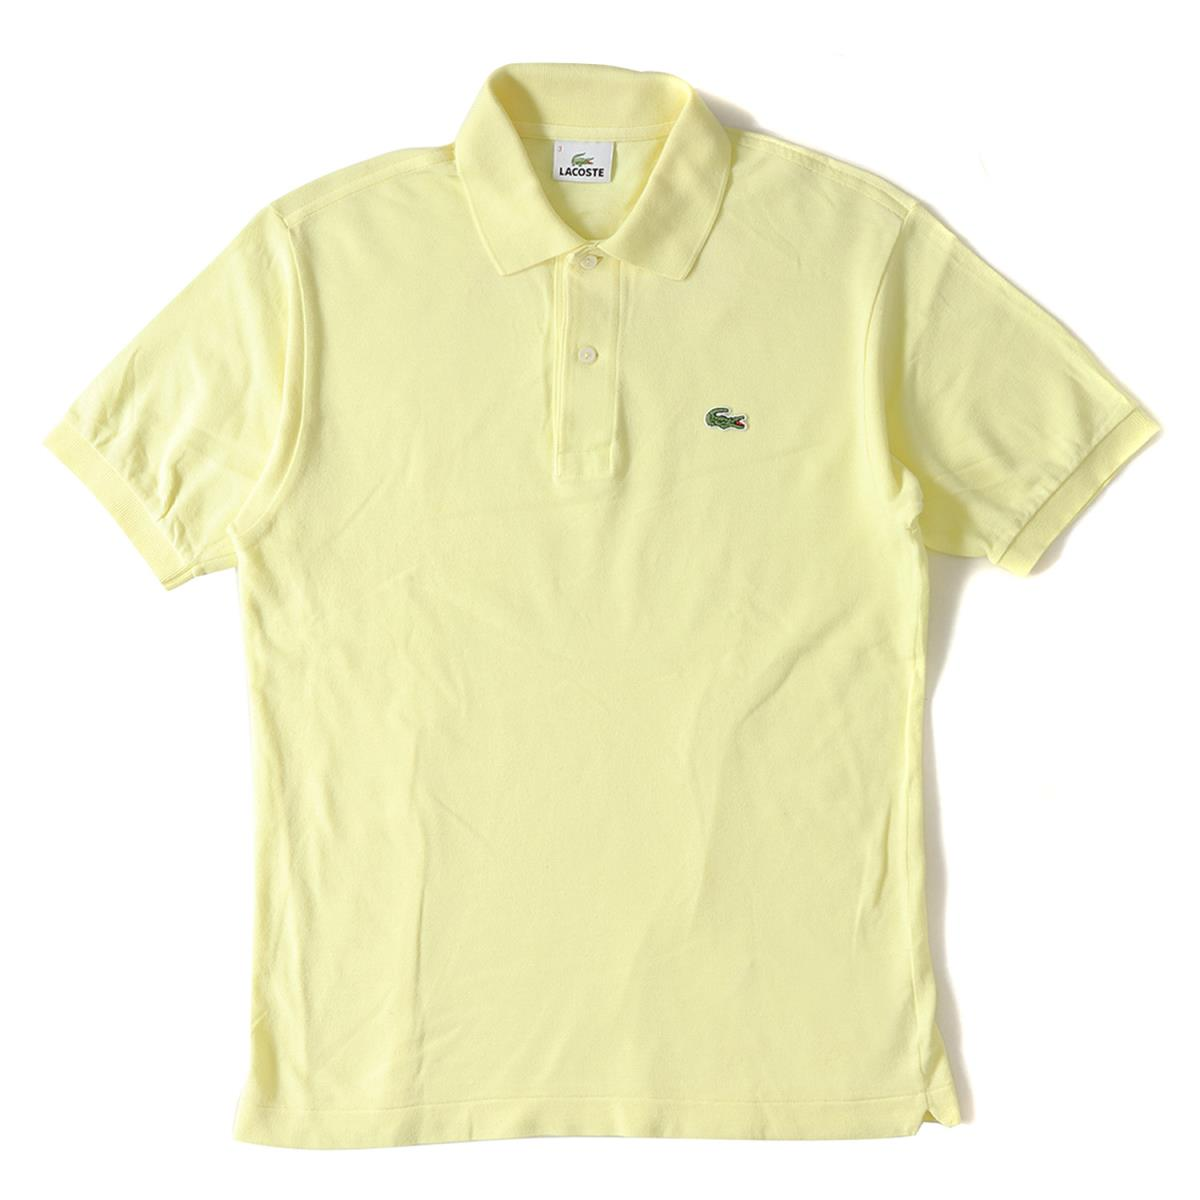 eee861efc36 LACOSTE (Lacoste) crocodile emblem fawn cotton short sleeves polo shirt  (L1212X) yellow 3